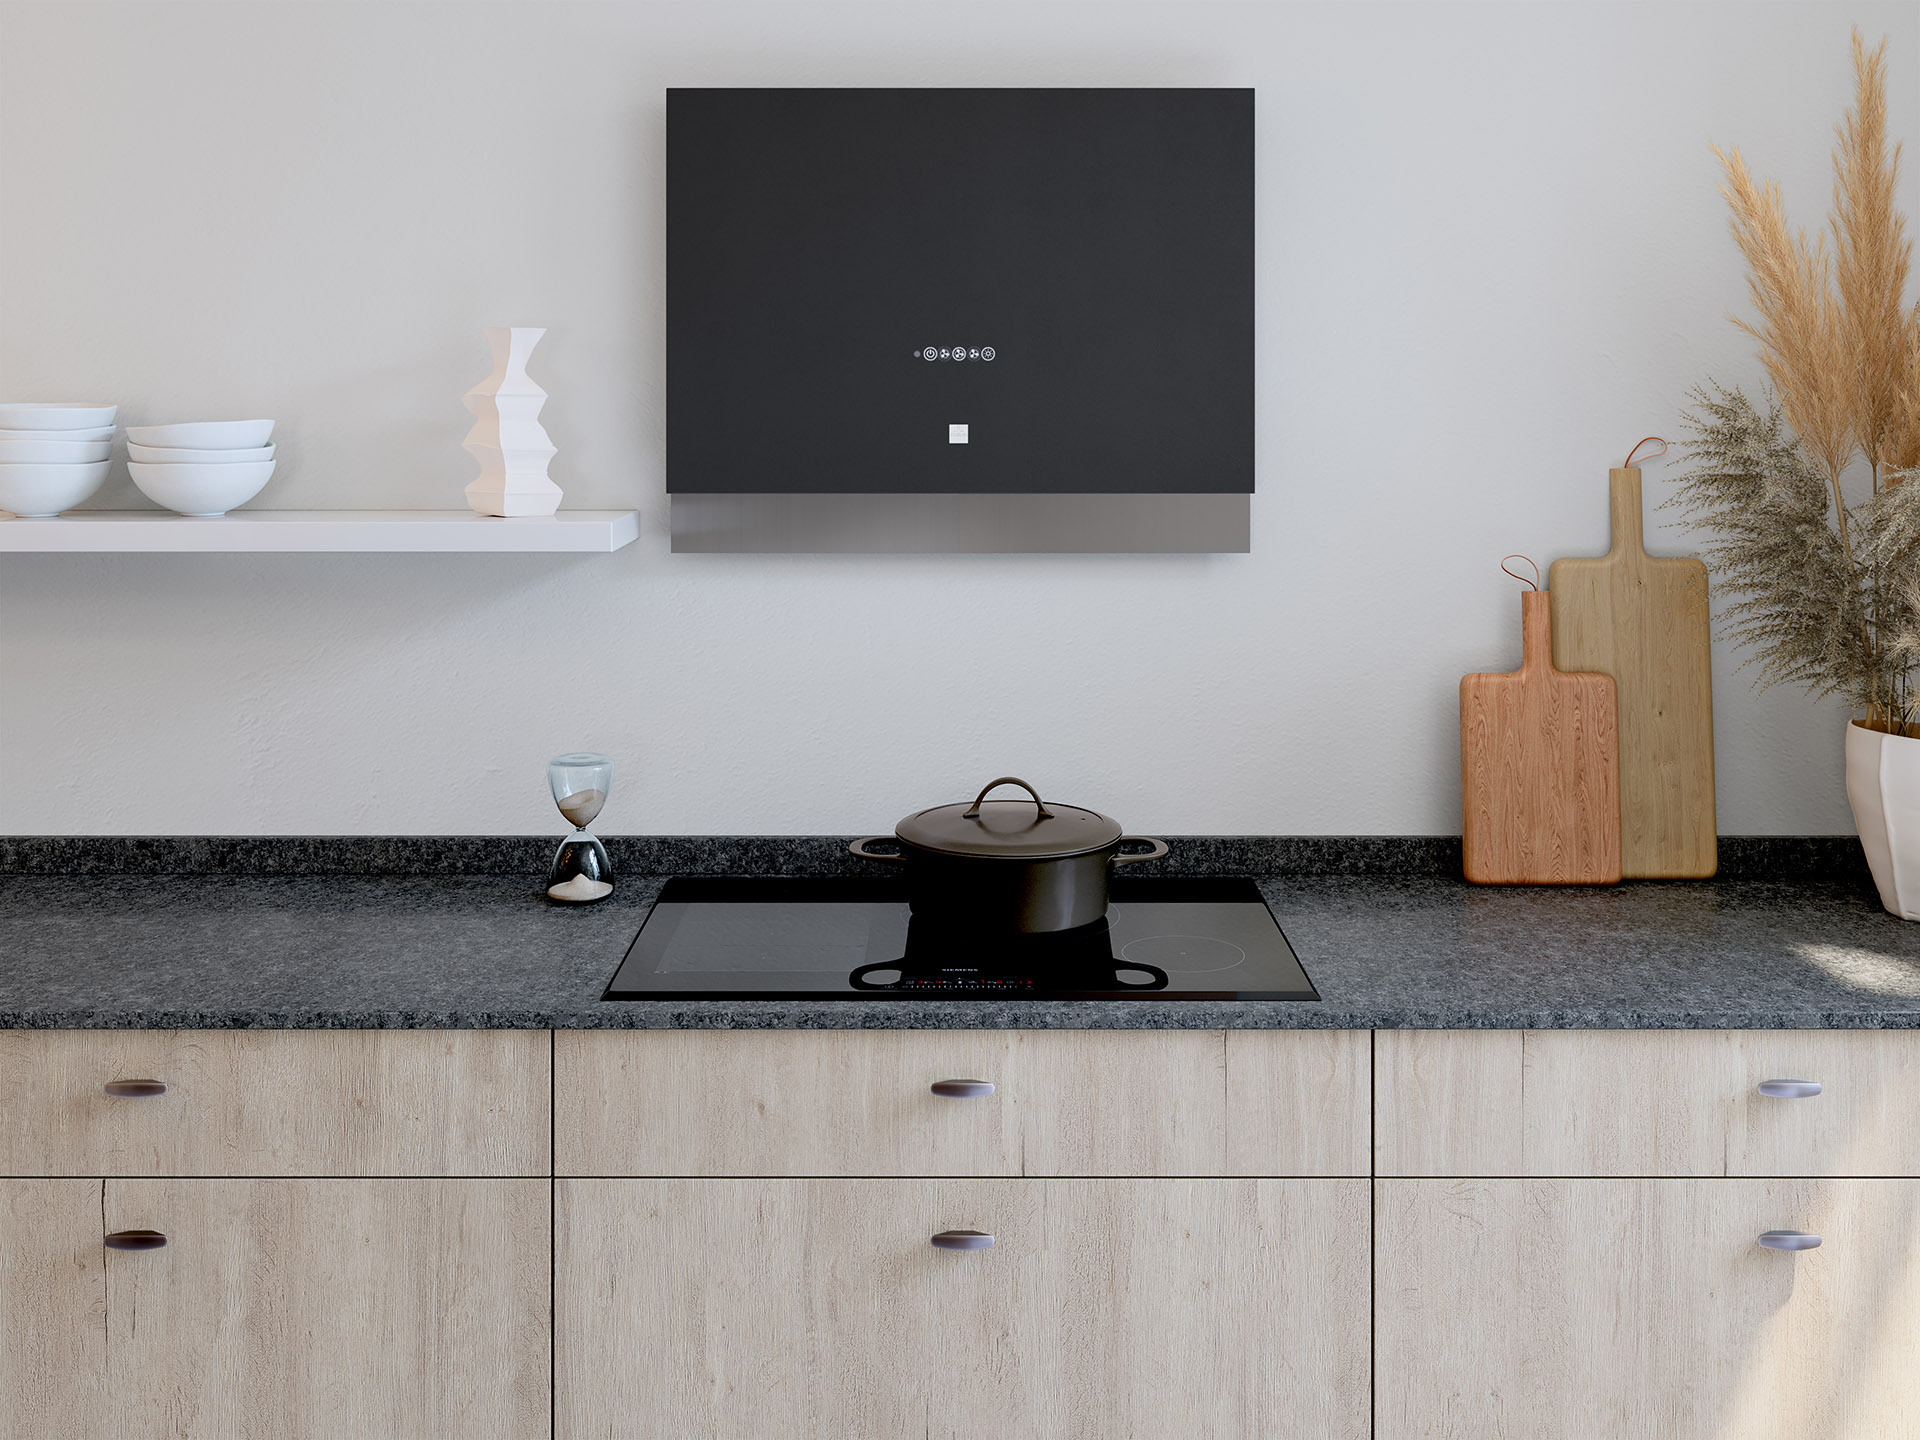 3D image of a modern kitchen worktop with cooktop and hood